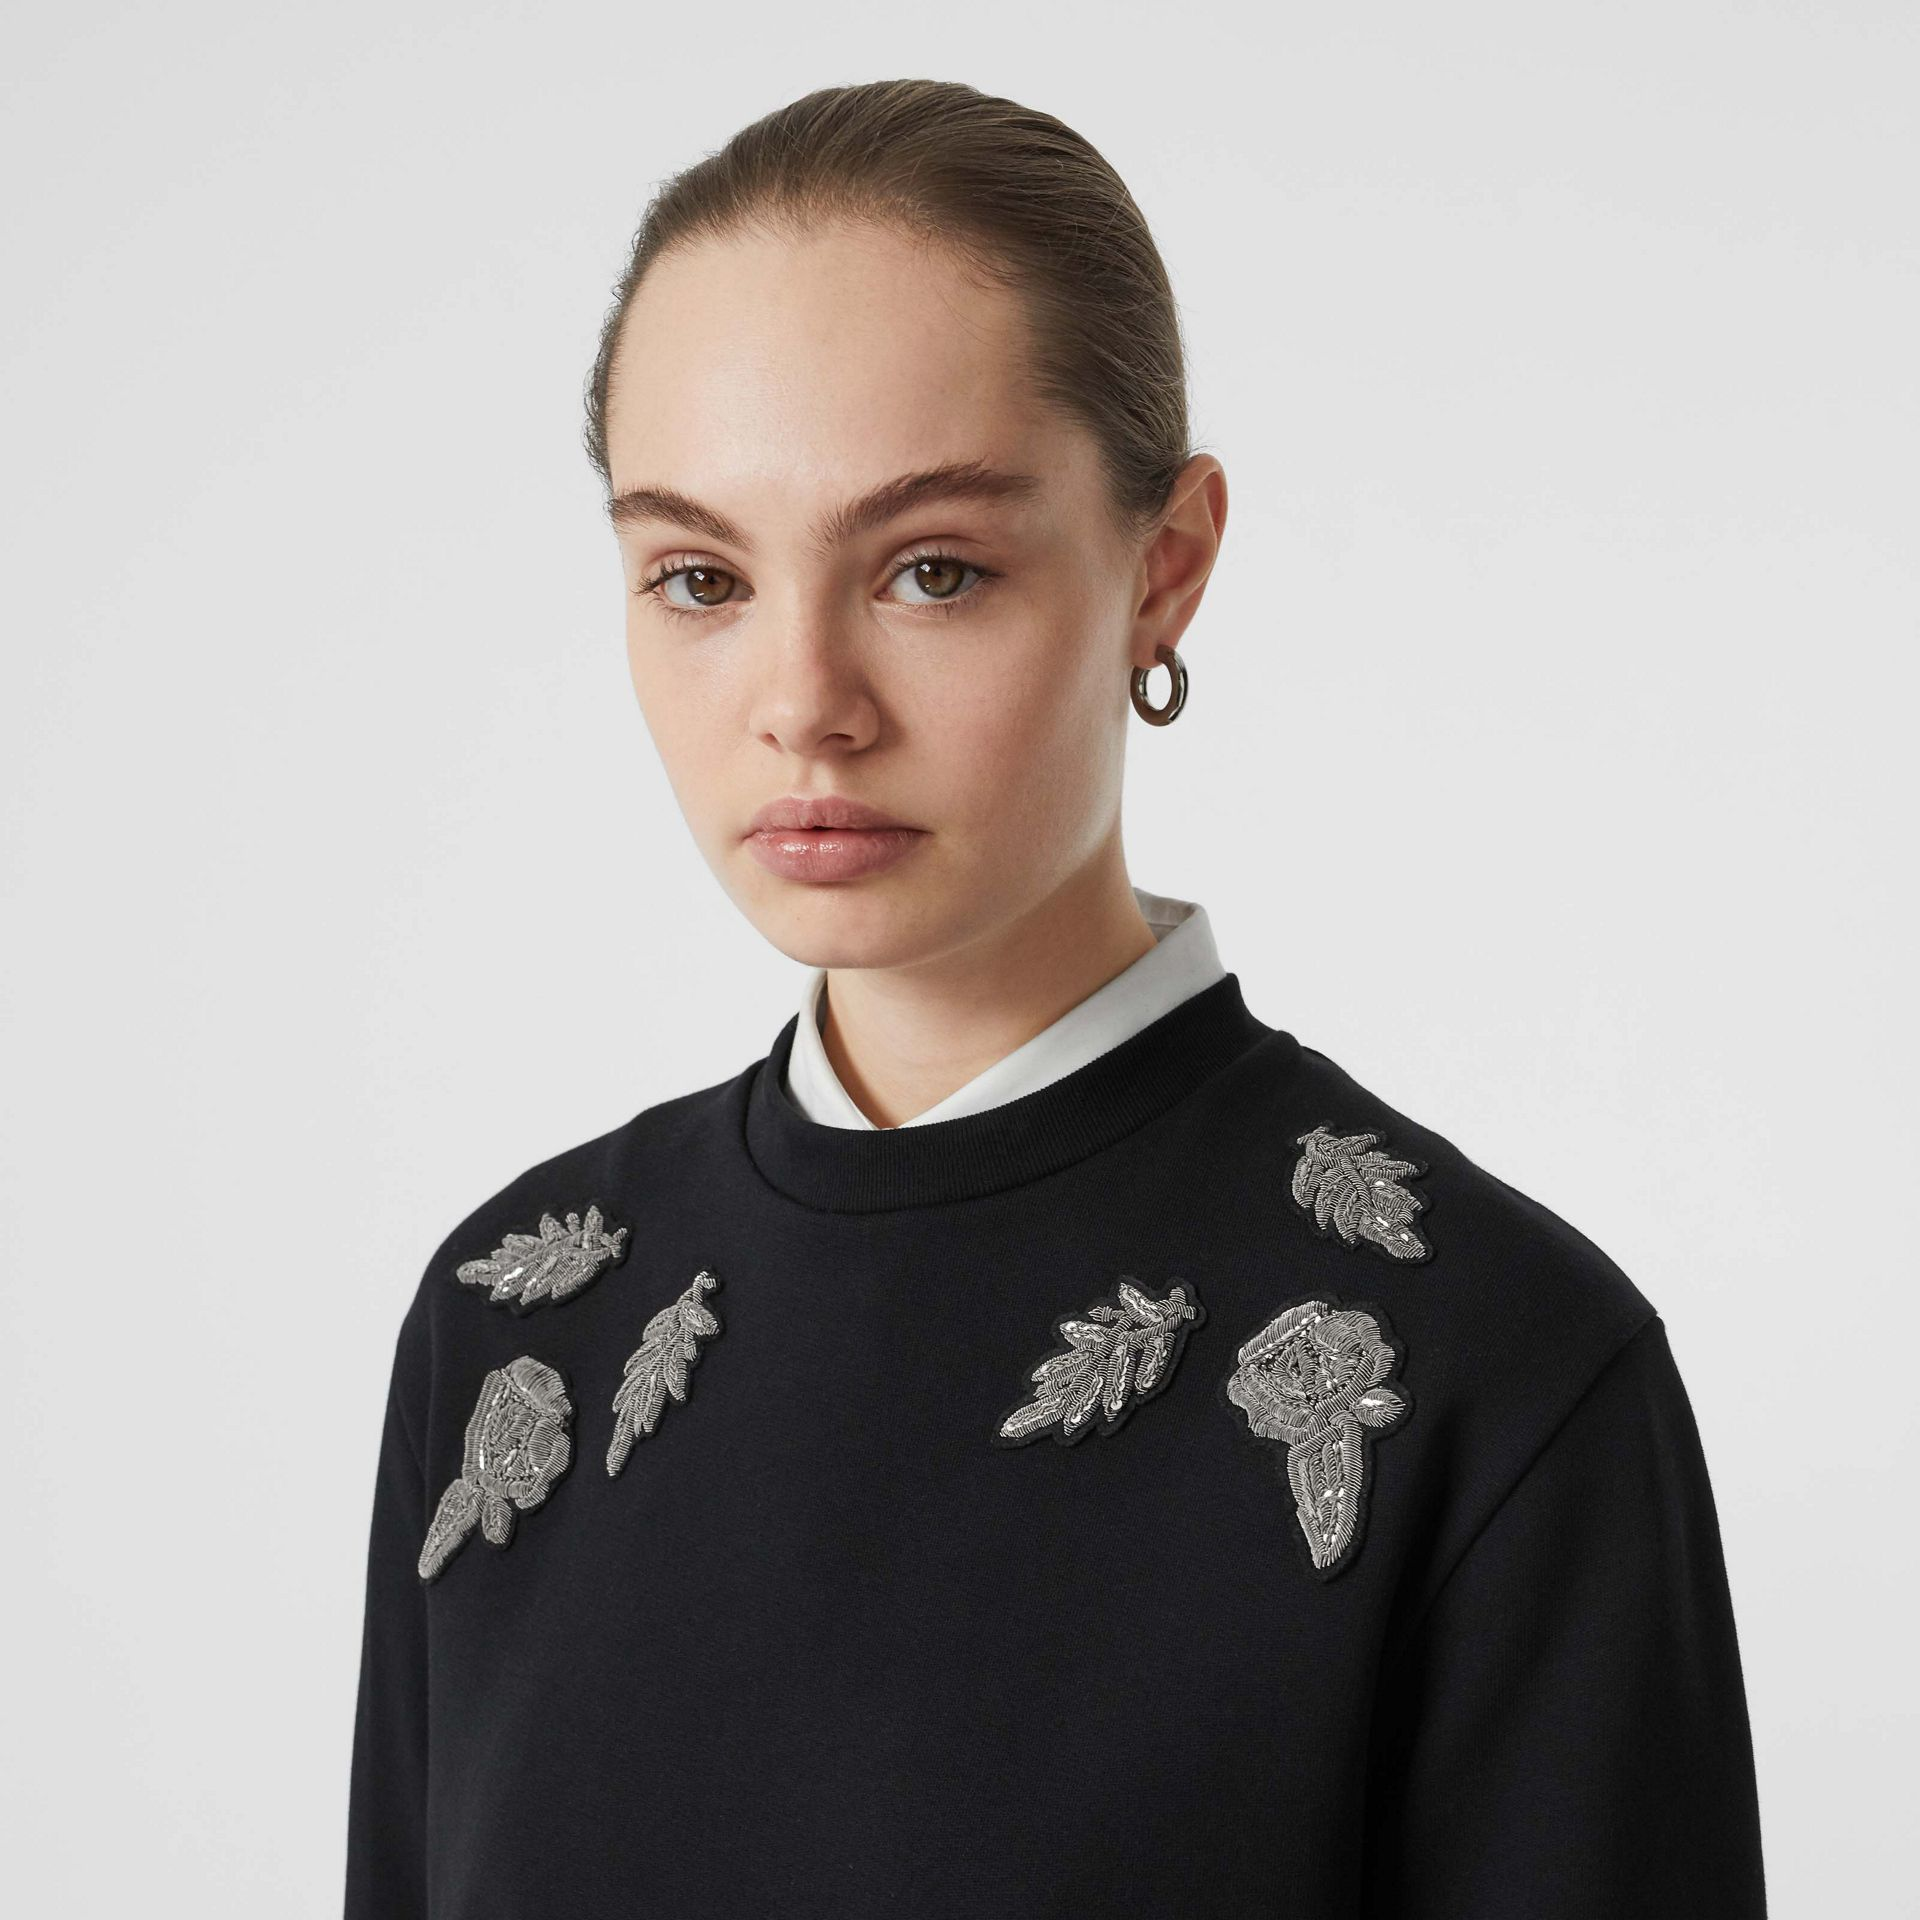 Bullion Floral Cotton Blend Sweatshirt in Black - Women | Burberry - gallery image 1